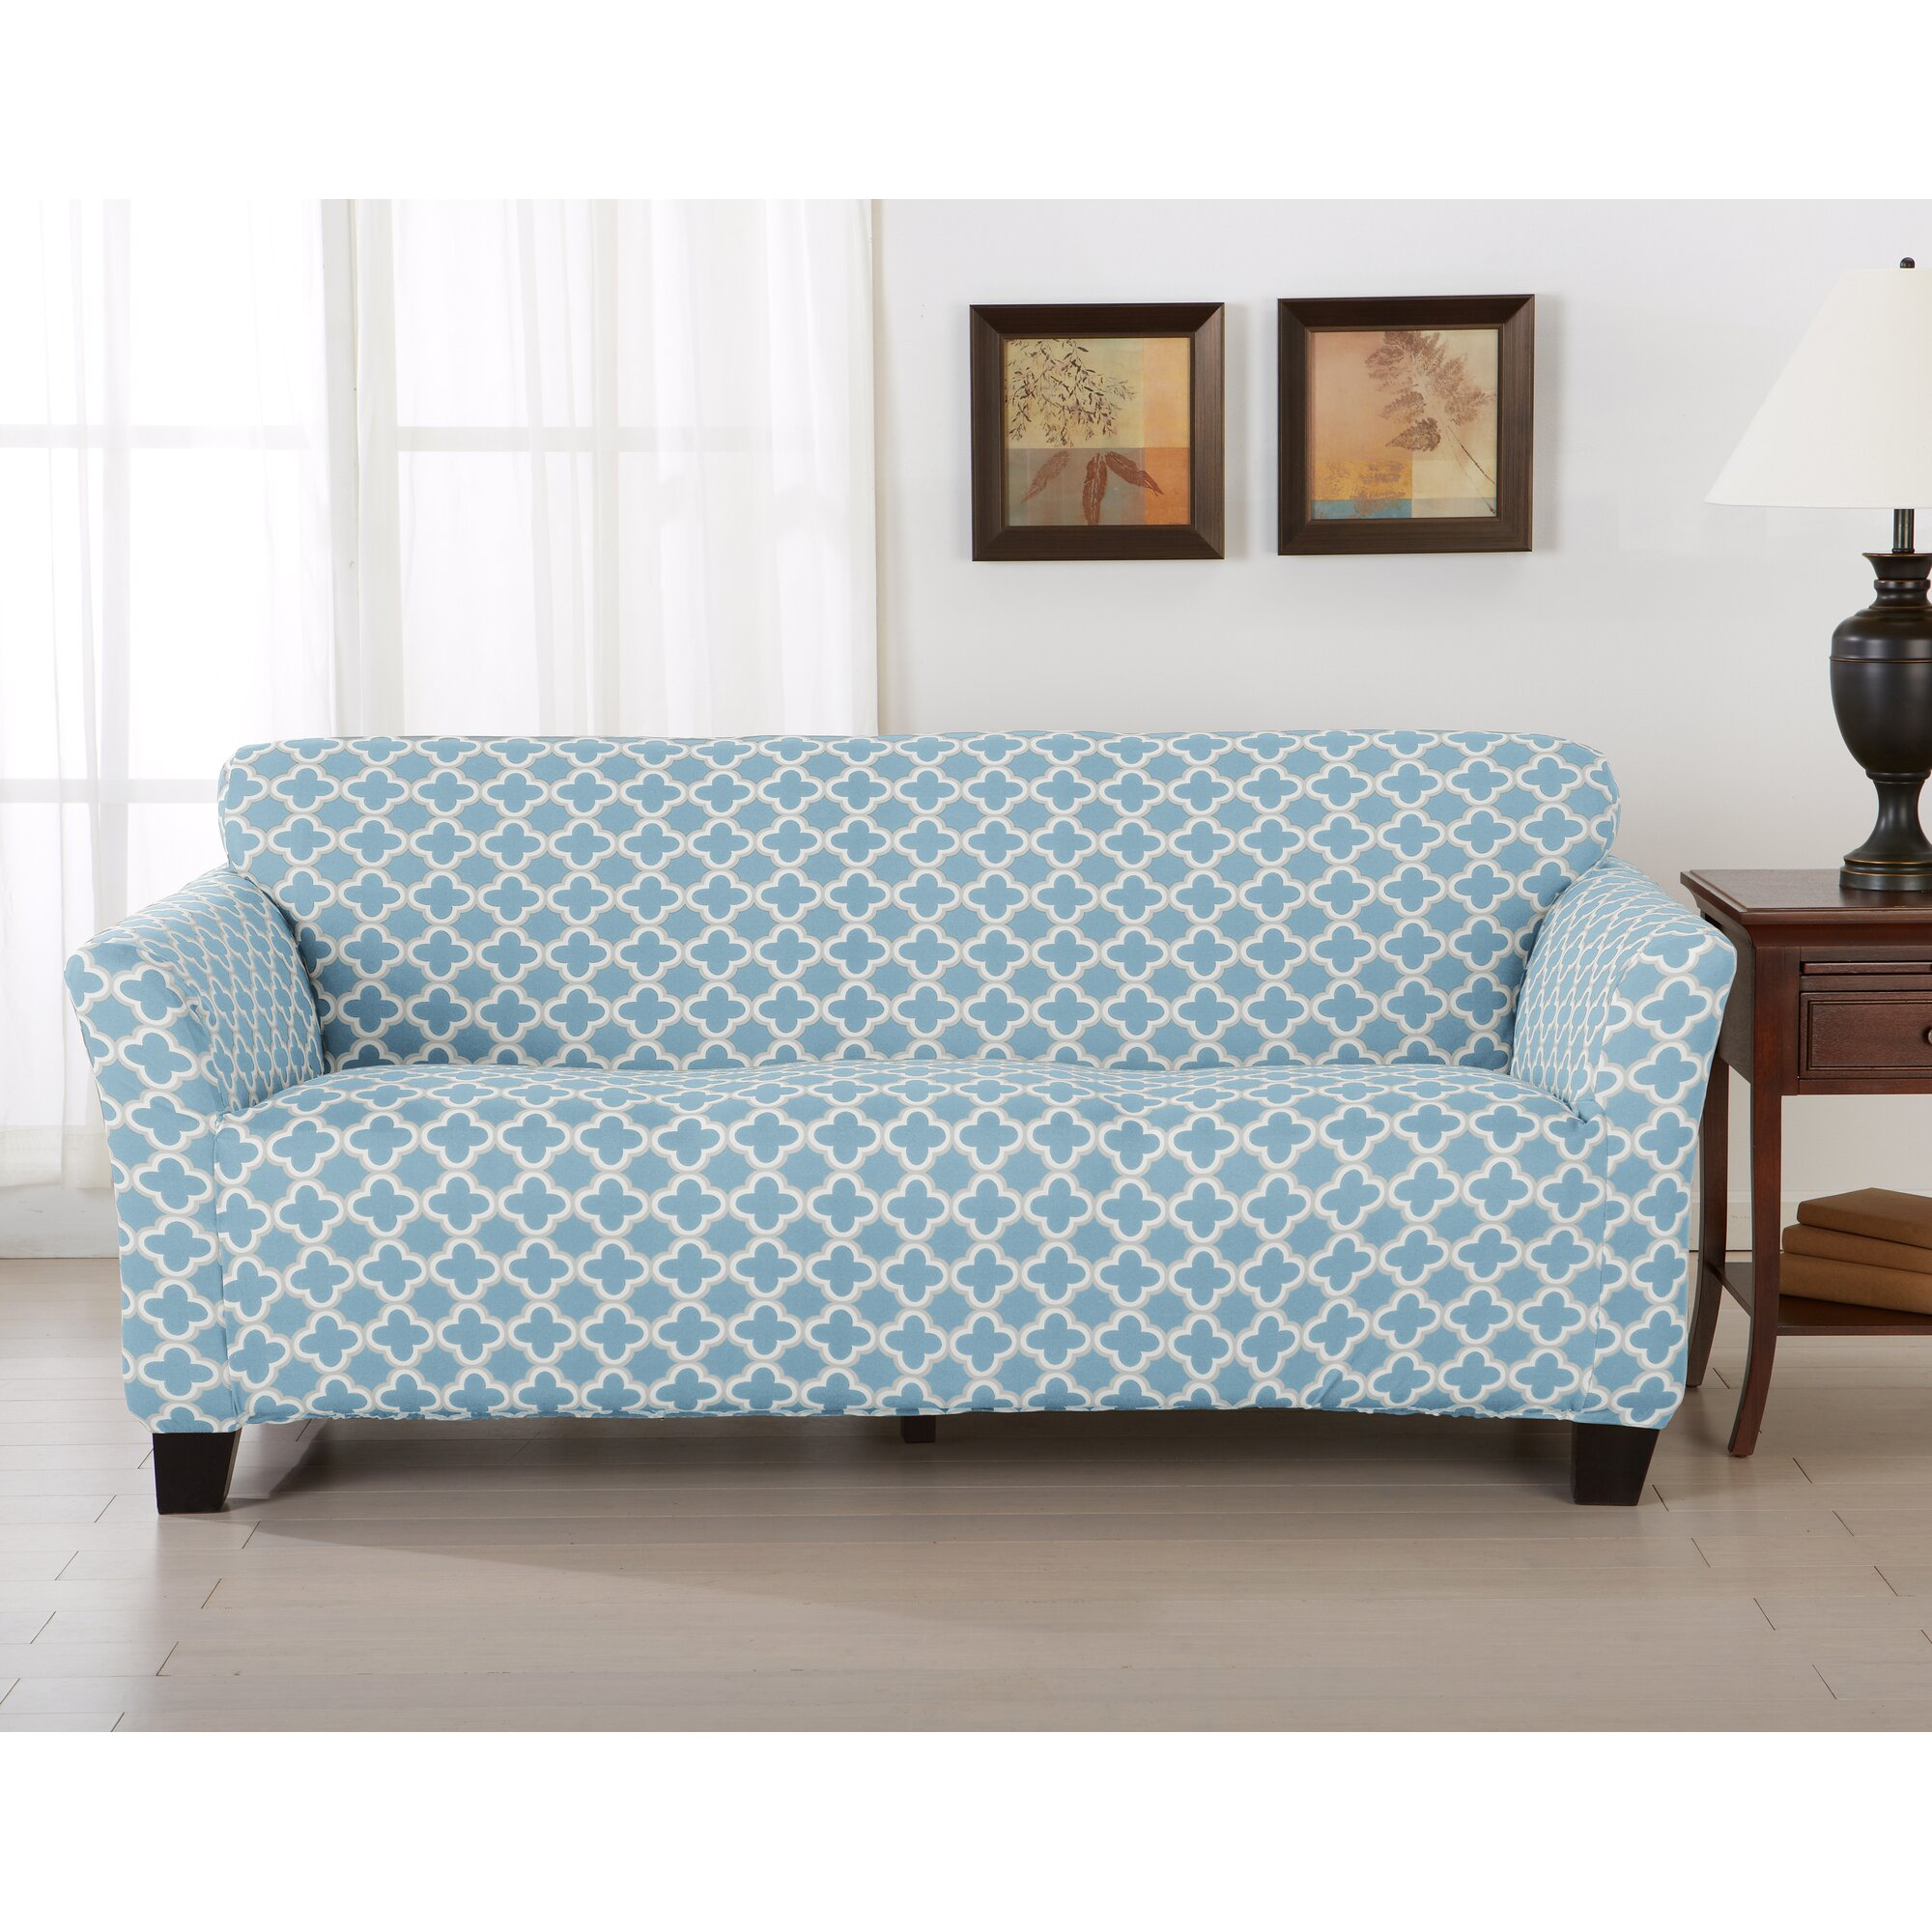 Chenille Skirted Sofa: Custom Sofa Slipcover Custom Made Slipcovers For Sectional